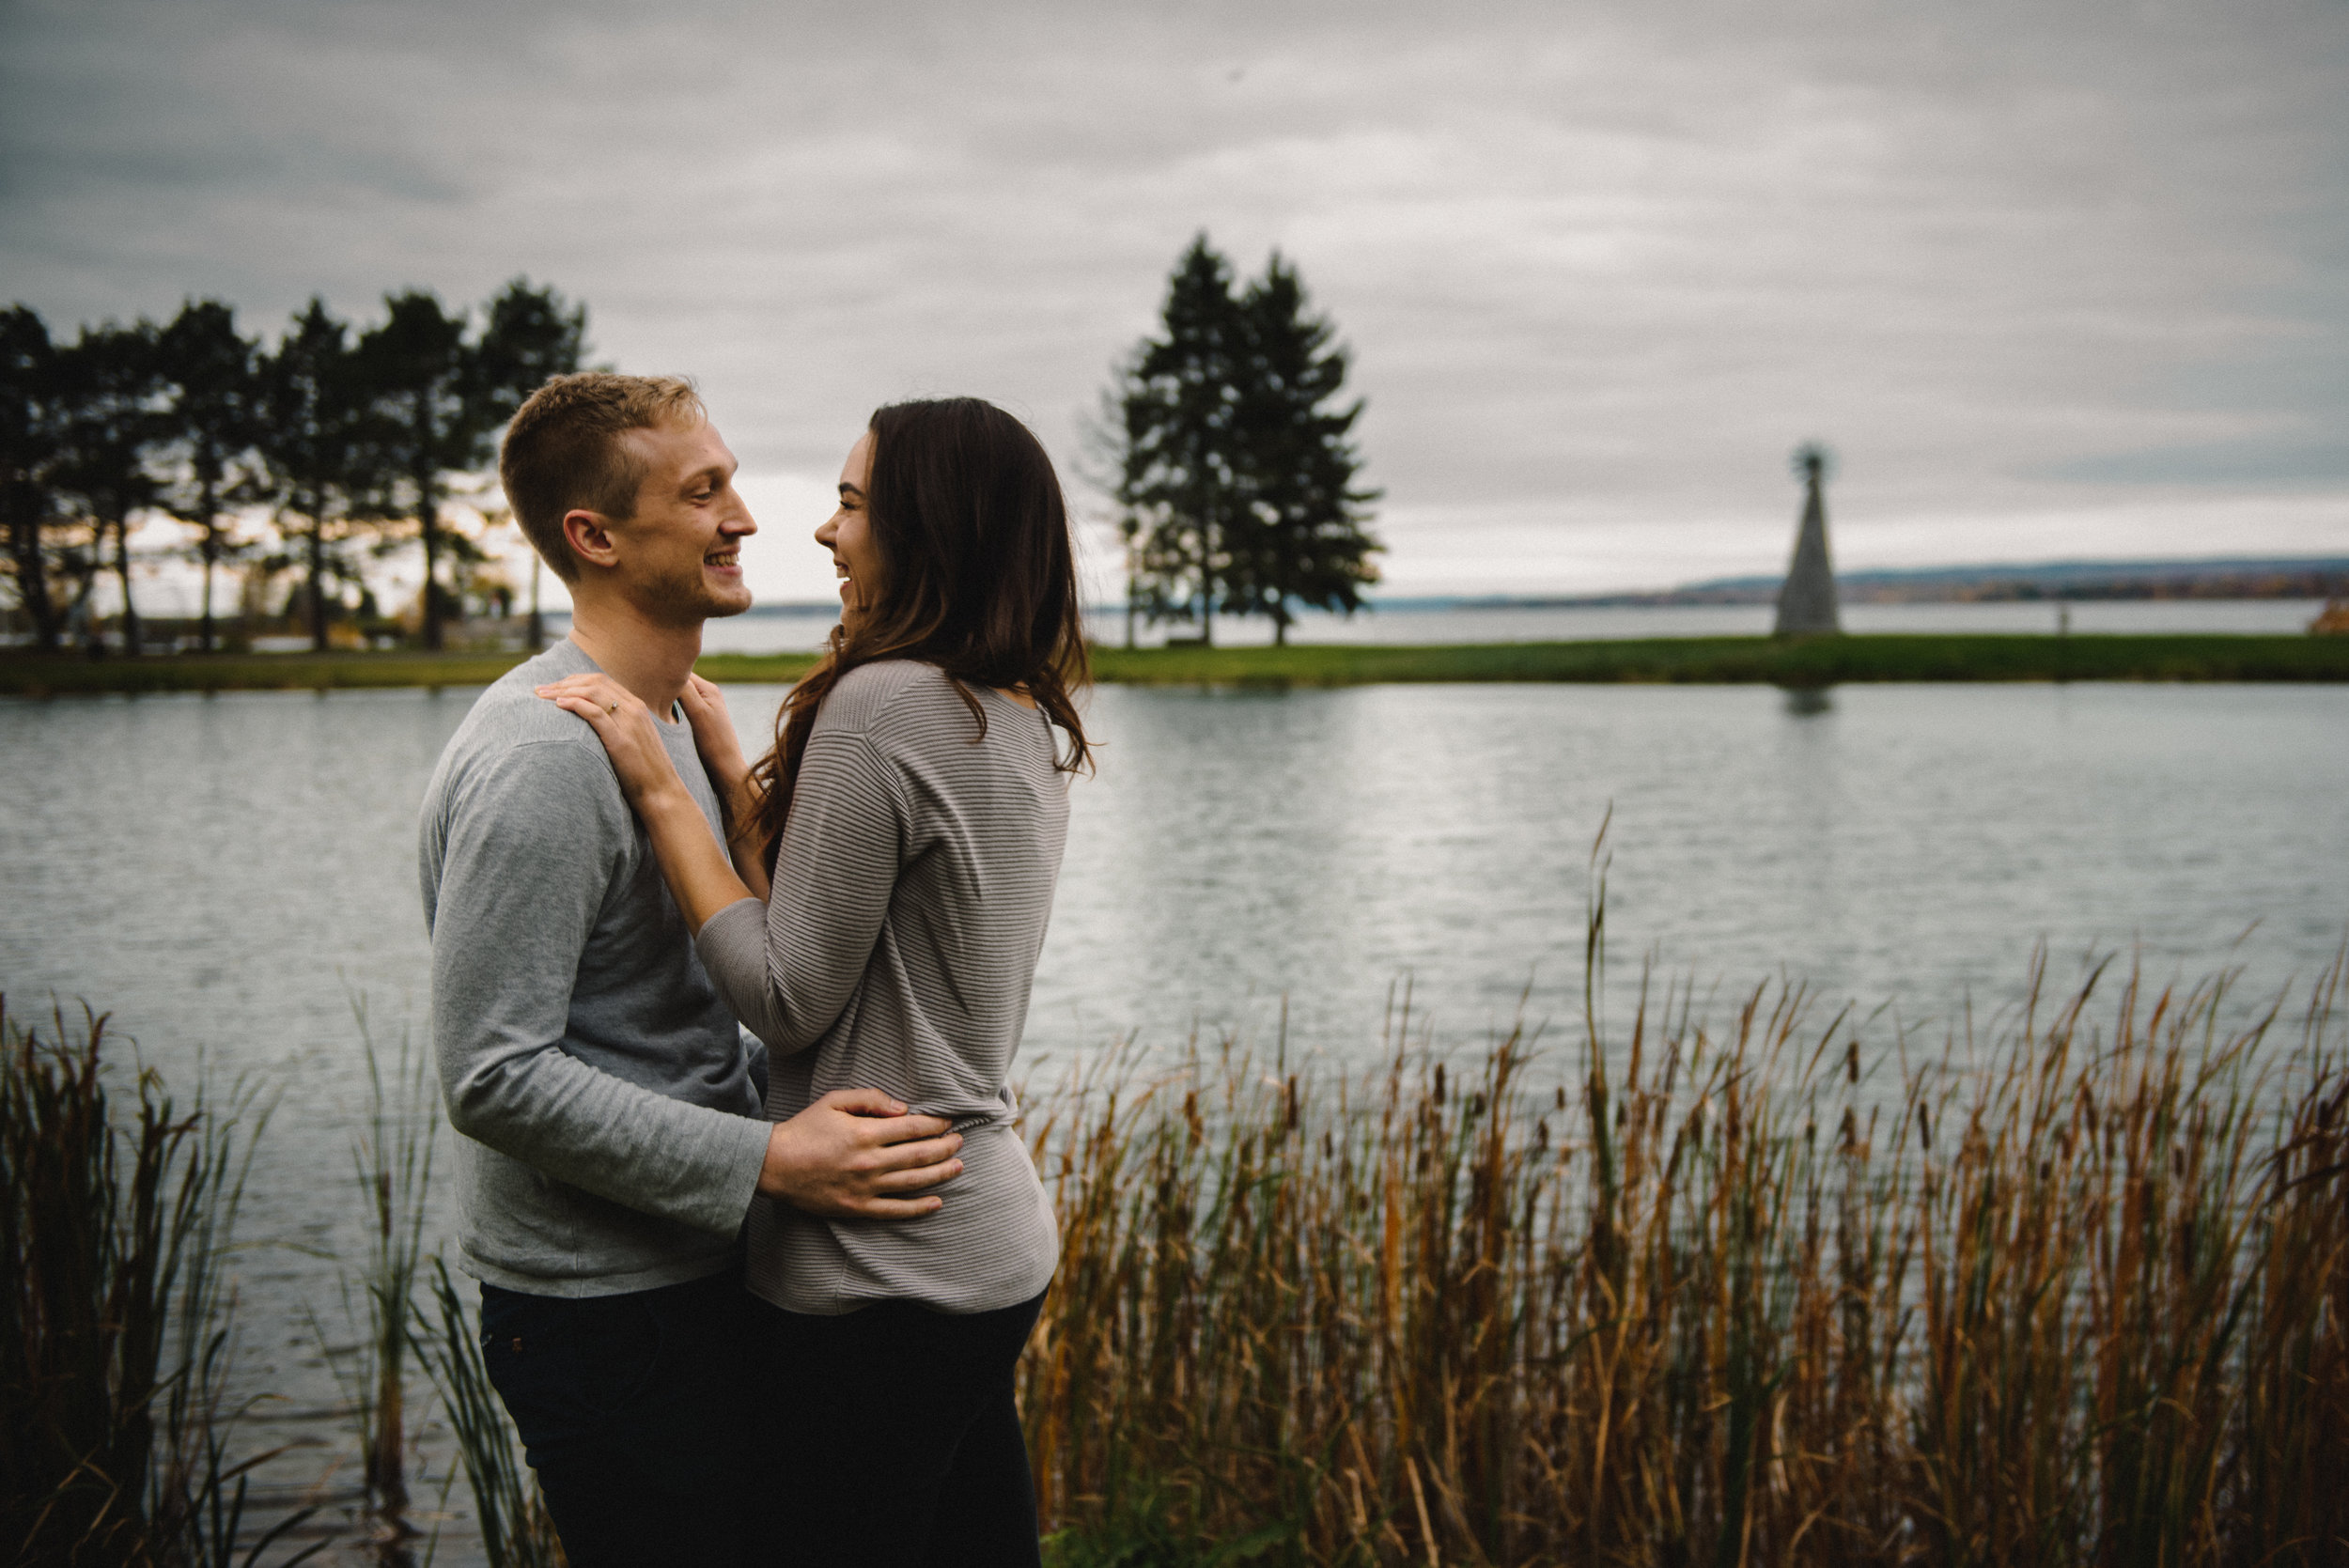 Mocha Tree Studios Ottawa Wedding and Engagement Photographer and Videographer Dark Moody Intimate Authentic Modern Romantic Cinematic Best Candid Where in Ottawa  2